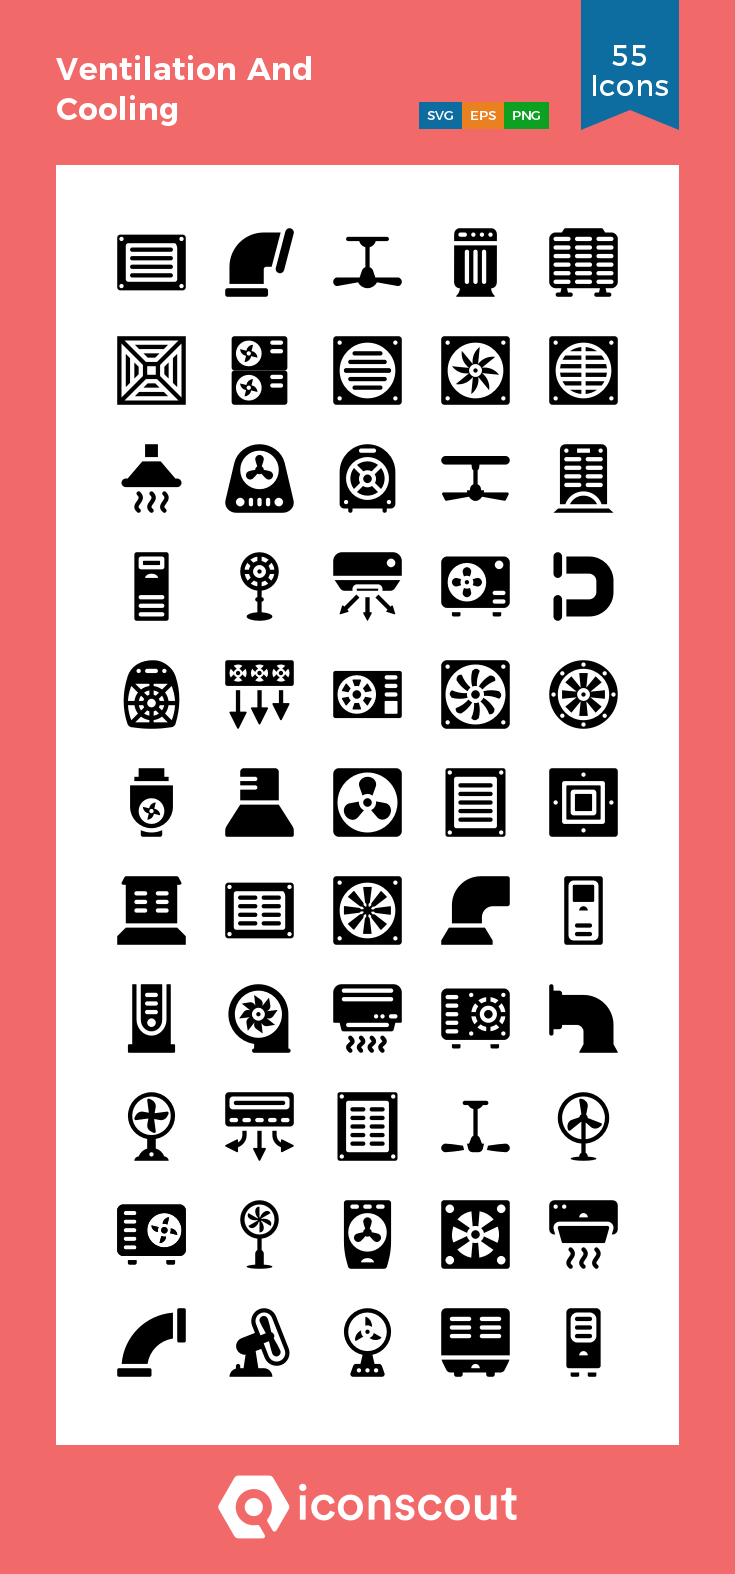 Download Ventilation And Cooling Icon Pack Available In Svg Png Eps Ai Icon Fonts Icon Pack Icon Icon Font